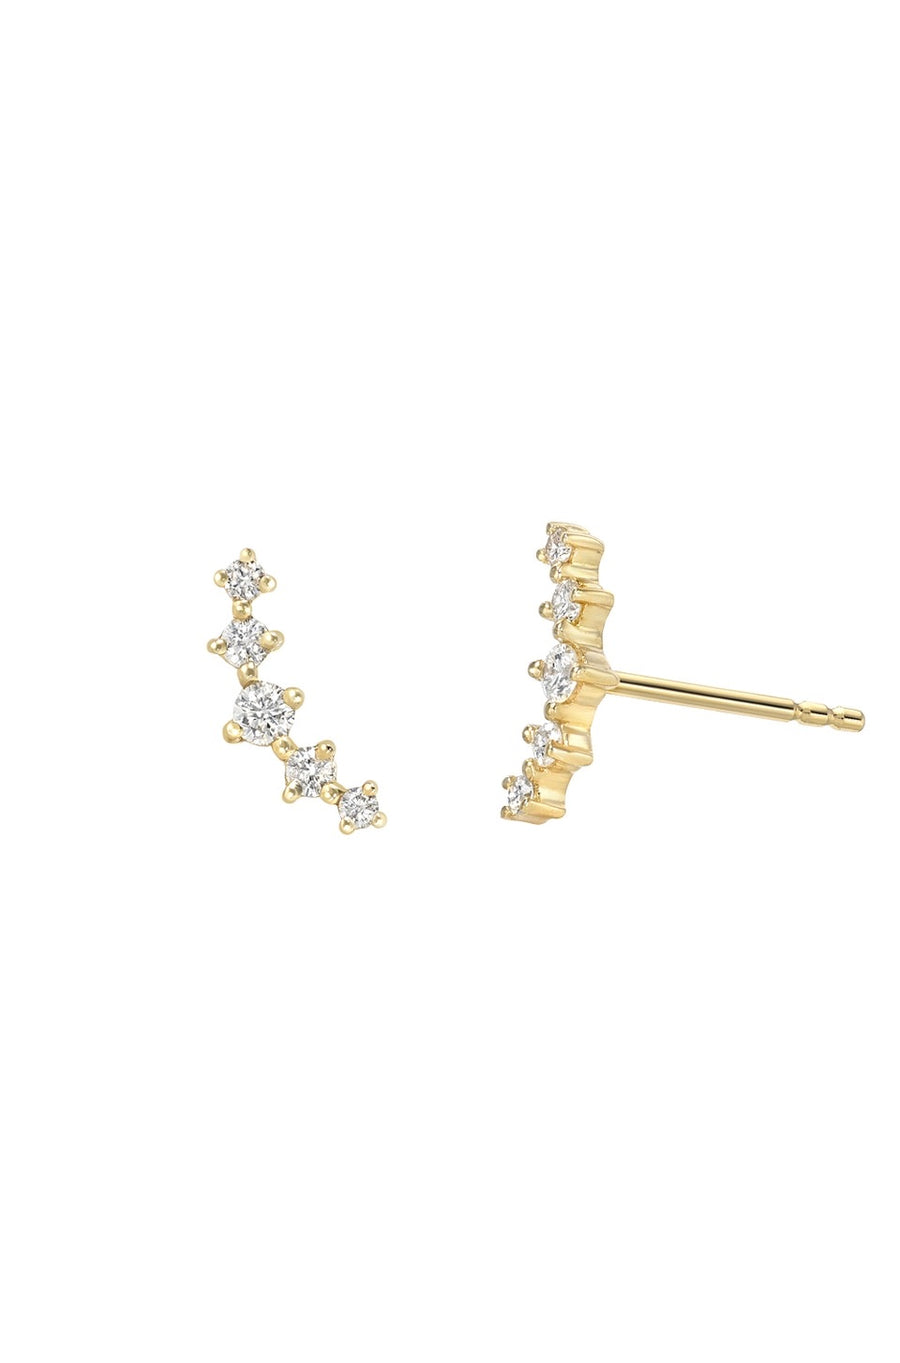 Zoe Lev Diamond Cluster Earring